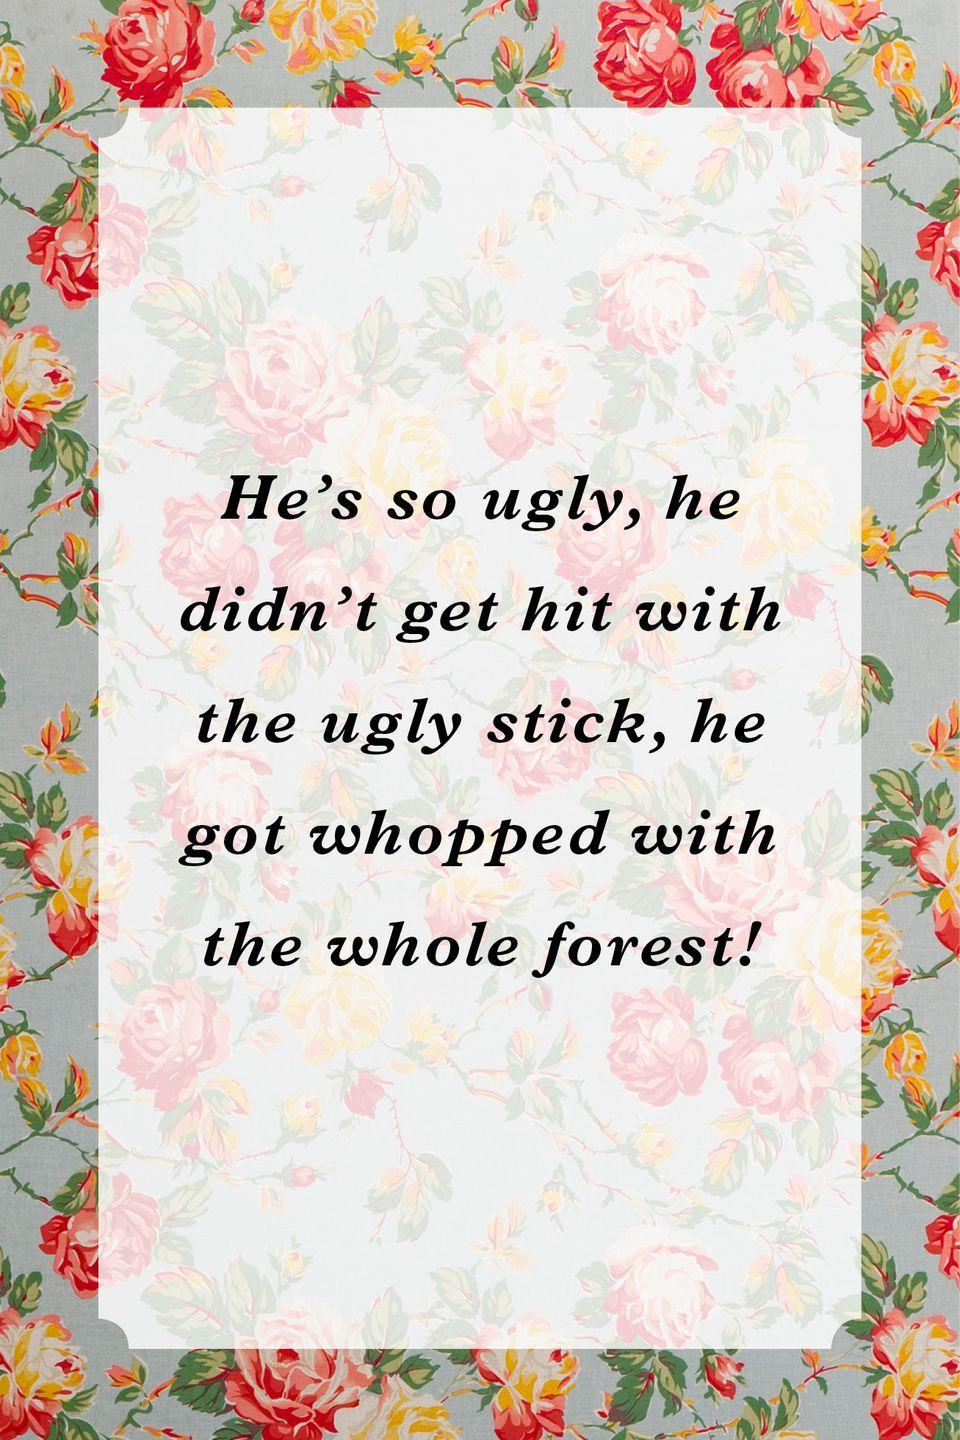 """<p>""""He's so ugly, he didn't get hit with the ugly stick, he got whopped with the whole forest!""""</p>"""